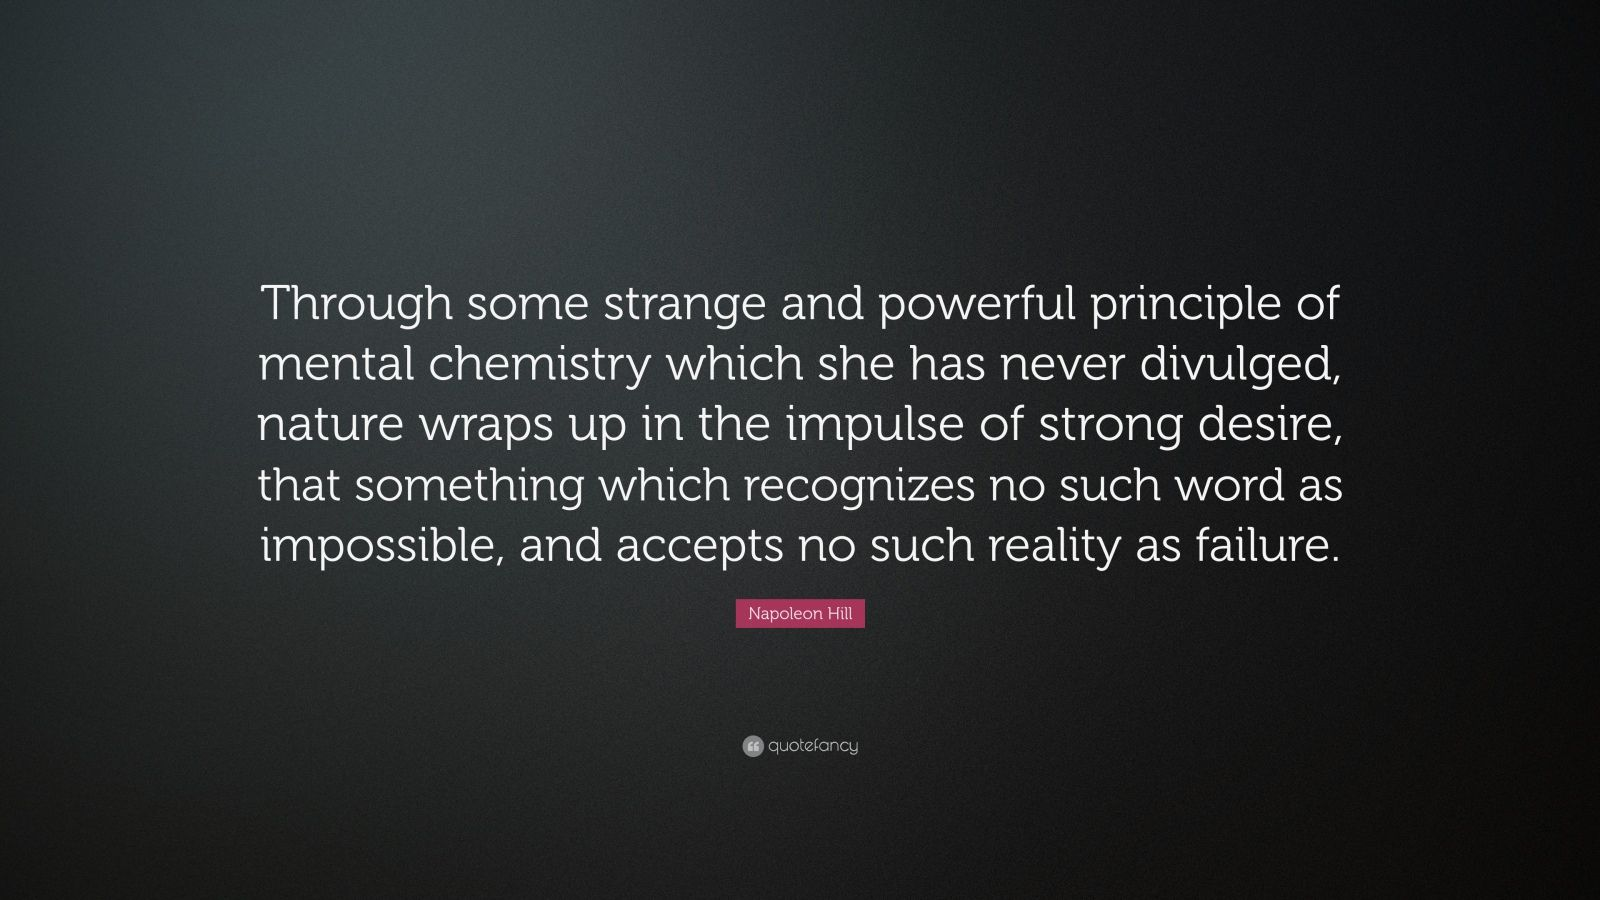 "Napoleon Hill Quote: ""Through some strange and powerful principle of mental chemistry which she has never divulged, nature wraps up in the impulse of strong desire, that something which recognizes no such word as impossible, and accepts no such reality as failure."""